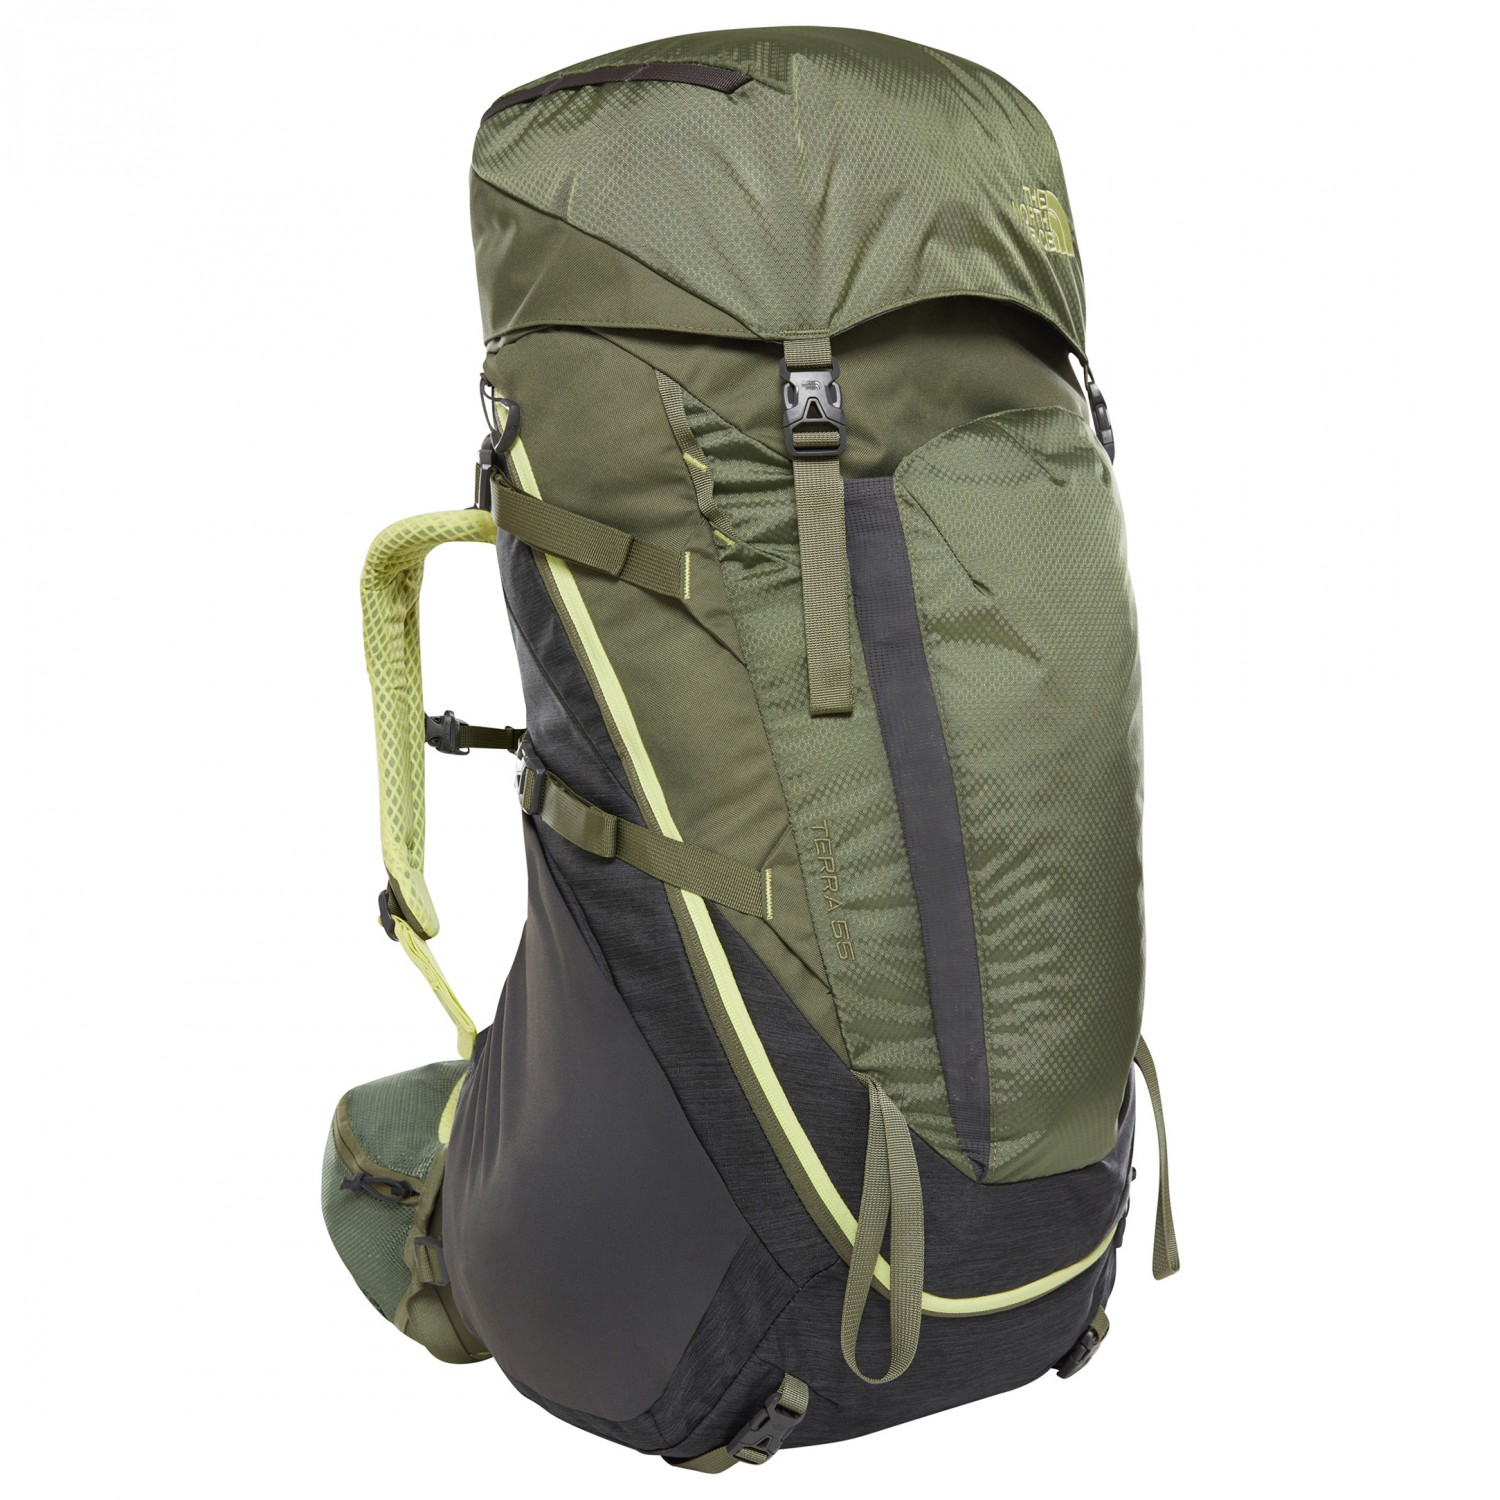 62bab2f6f The North Face - Women's Terra 55 - Walking backpack - TNF Dark Grey  Heather / Four Leaf Clover   55 l - XS/S